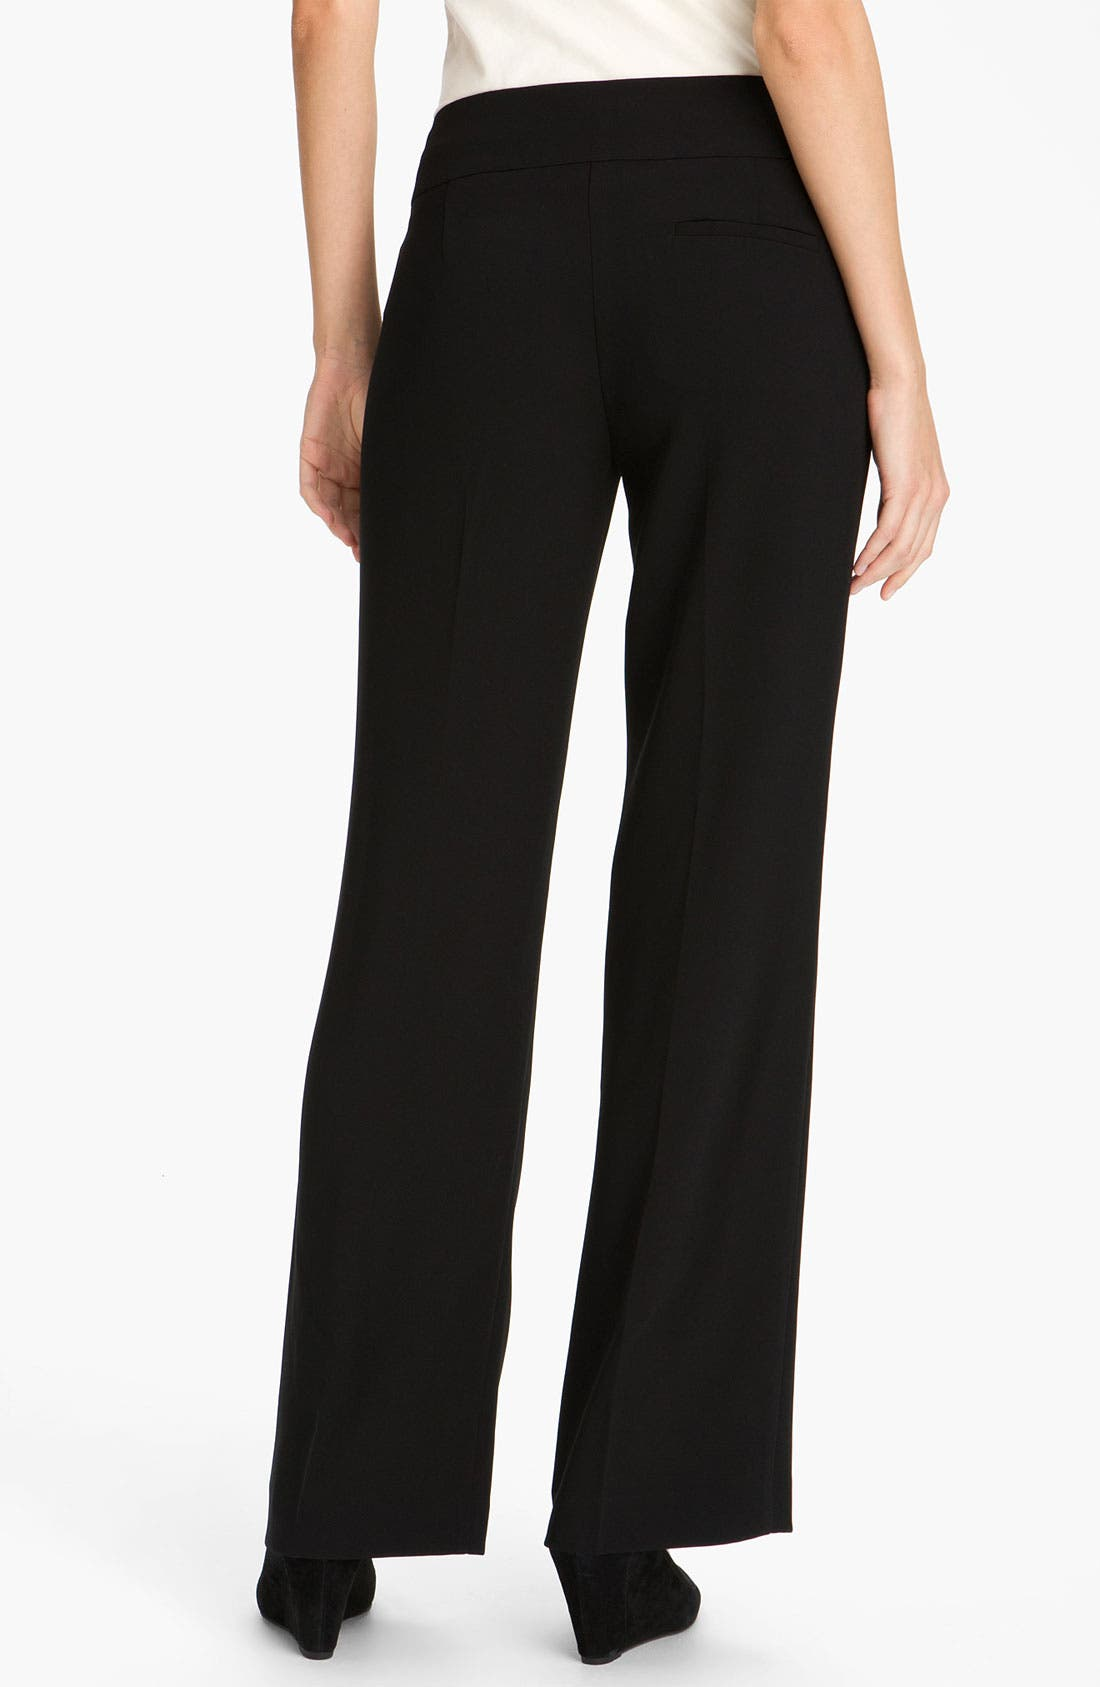 Alternate Image 2  - Eileen Fisher Wide Leg Tropical Weight Trousers (Online Exclusive)